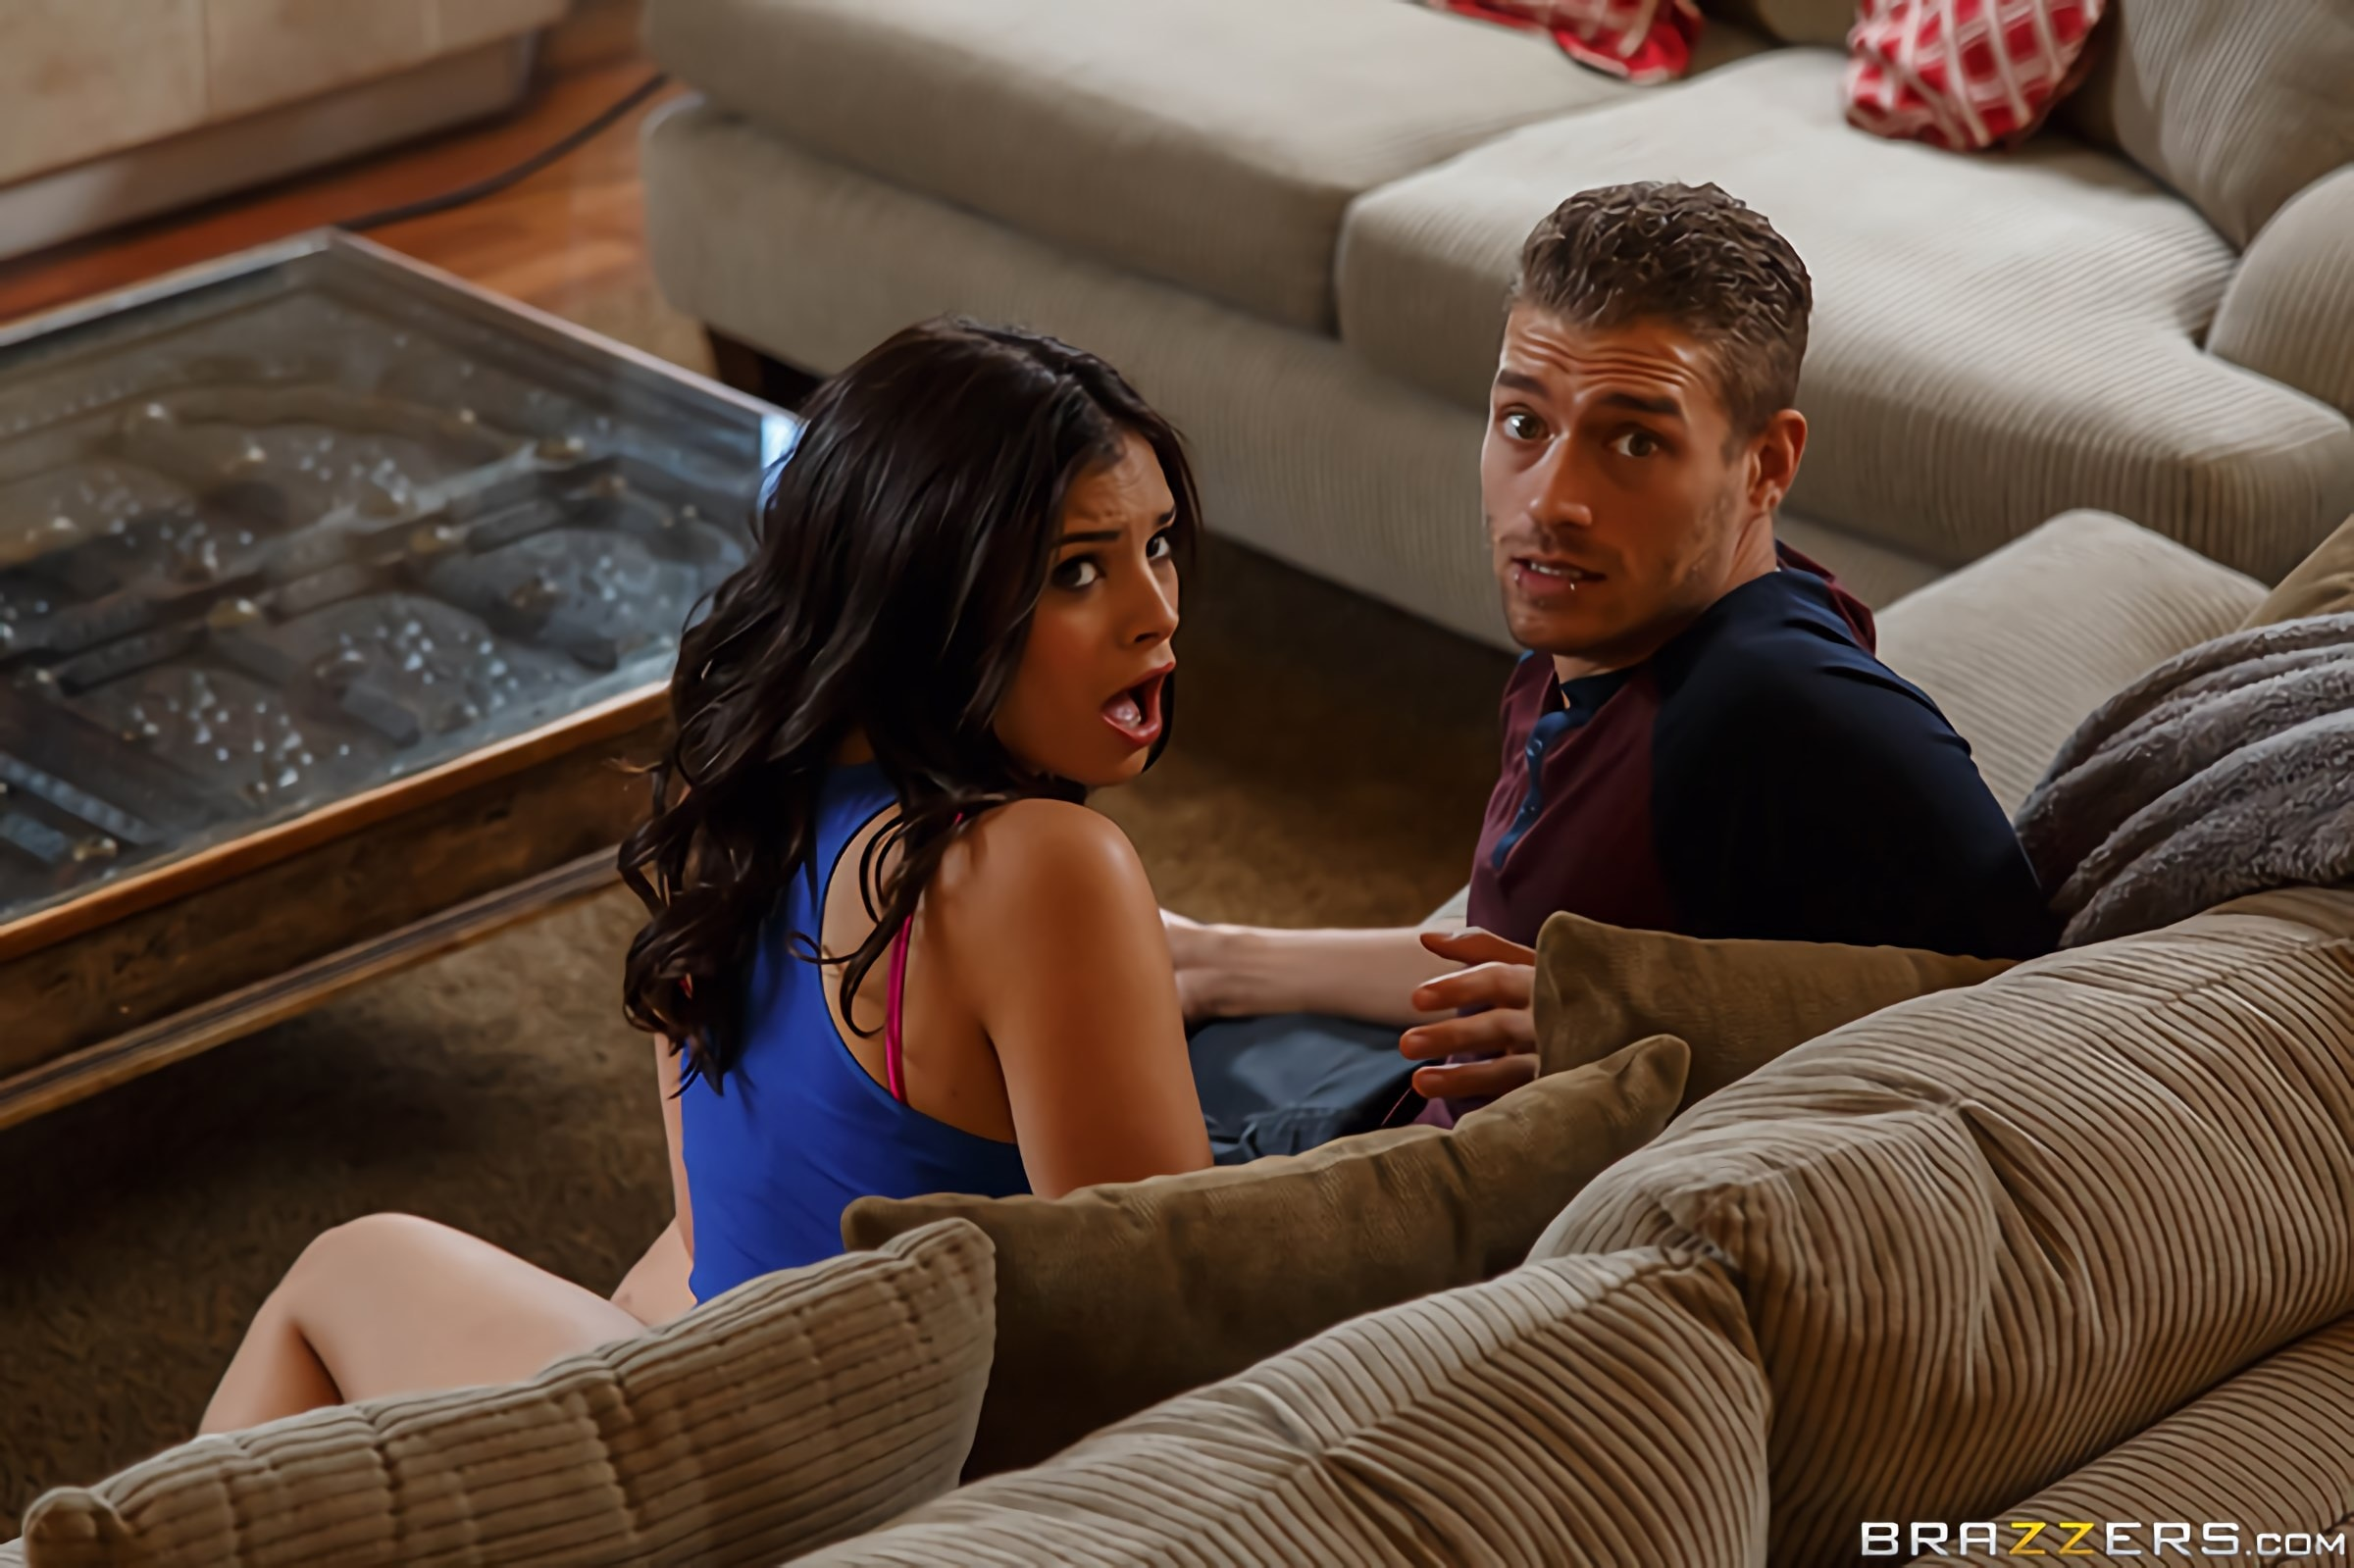 Brazzers 'Sharing the Siblings- Part 1' starring Lyra Law (Photo 14)